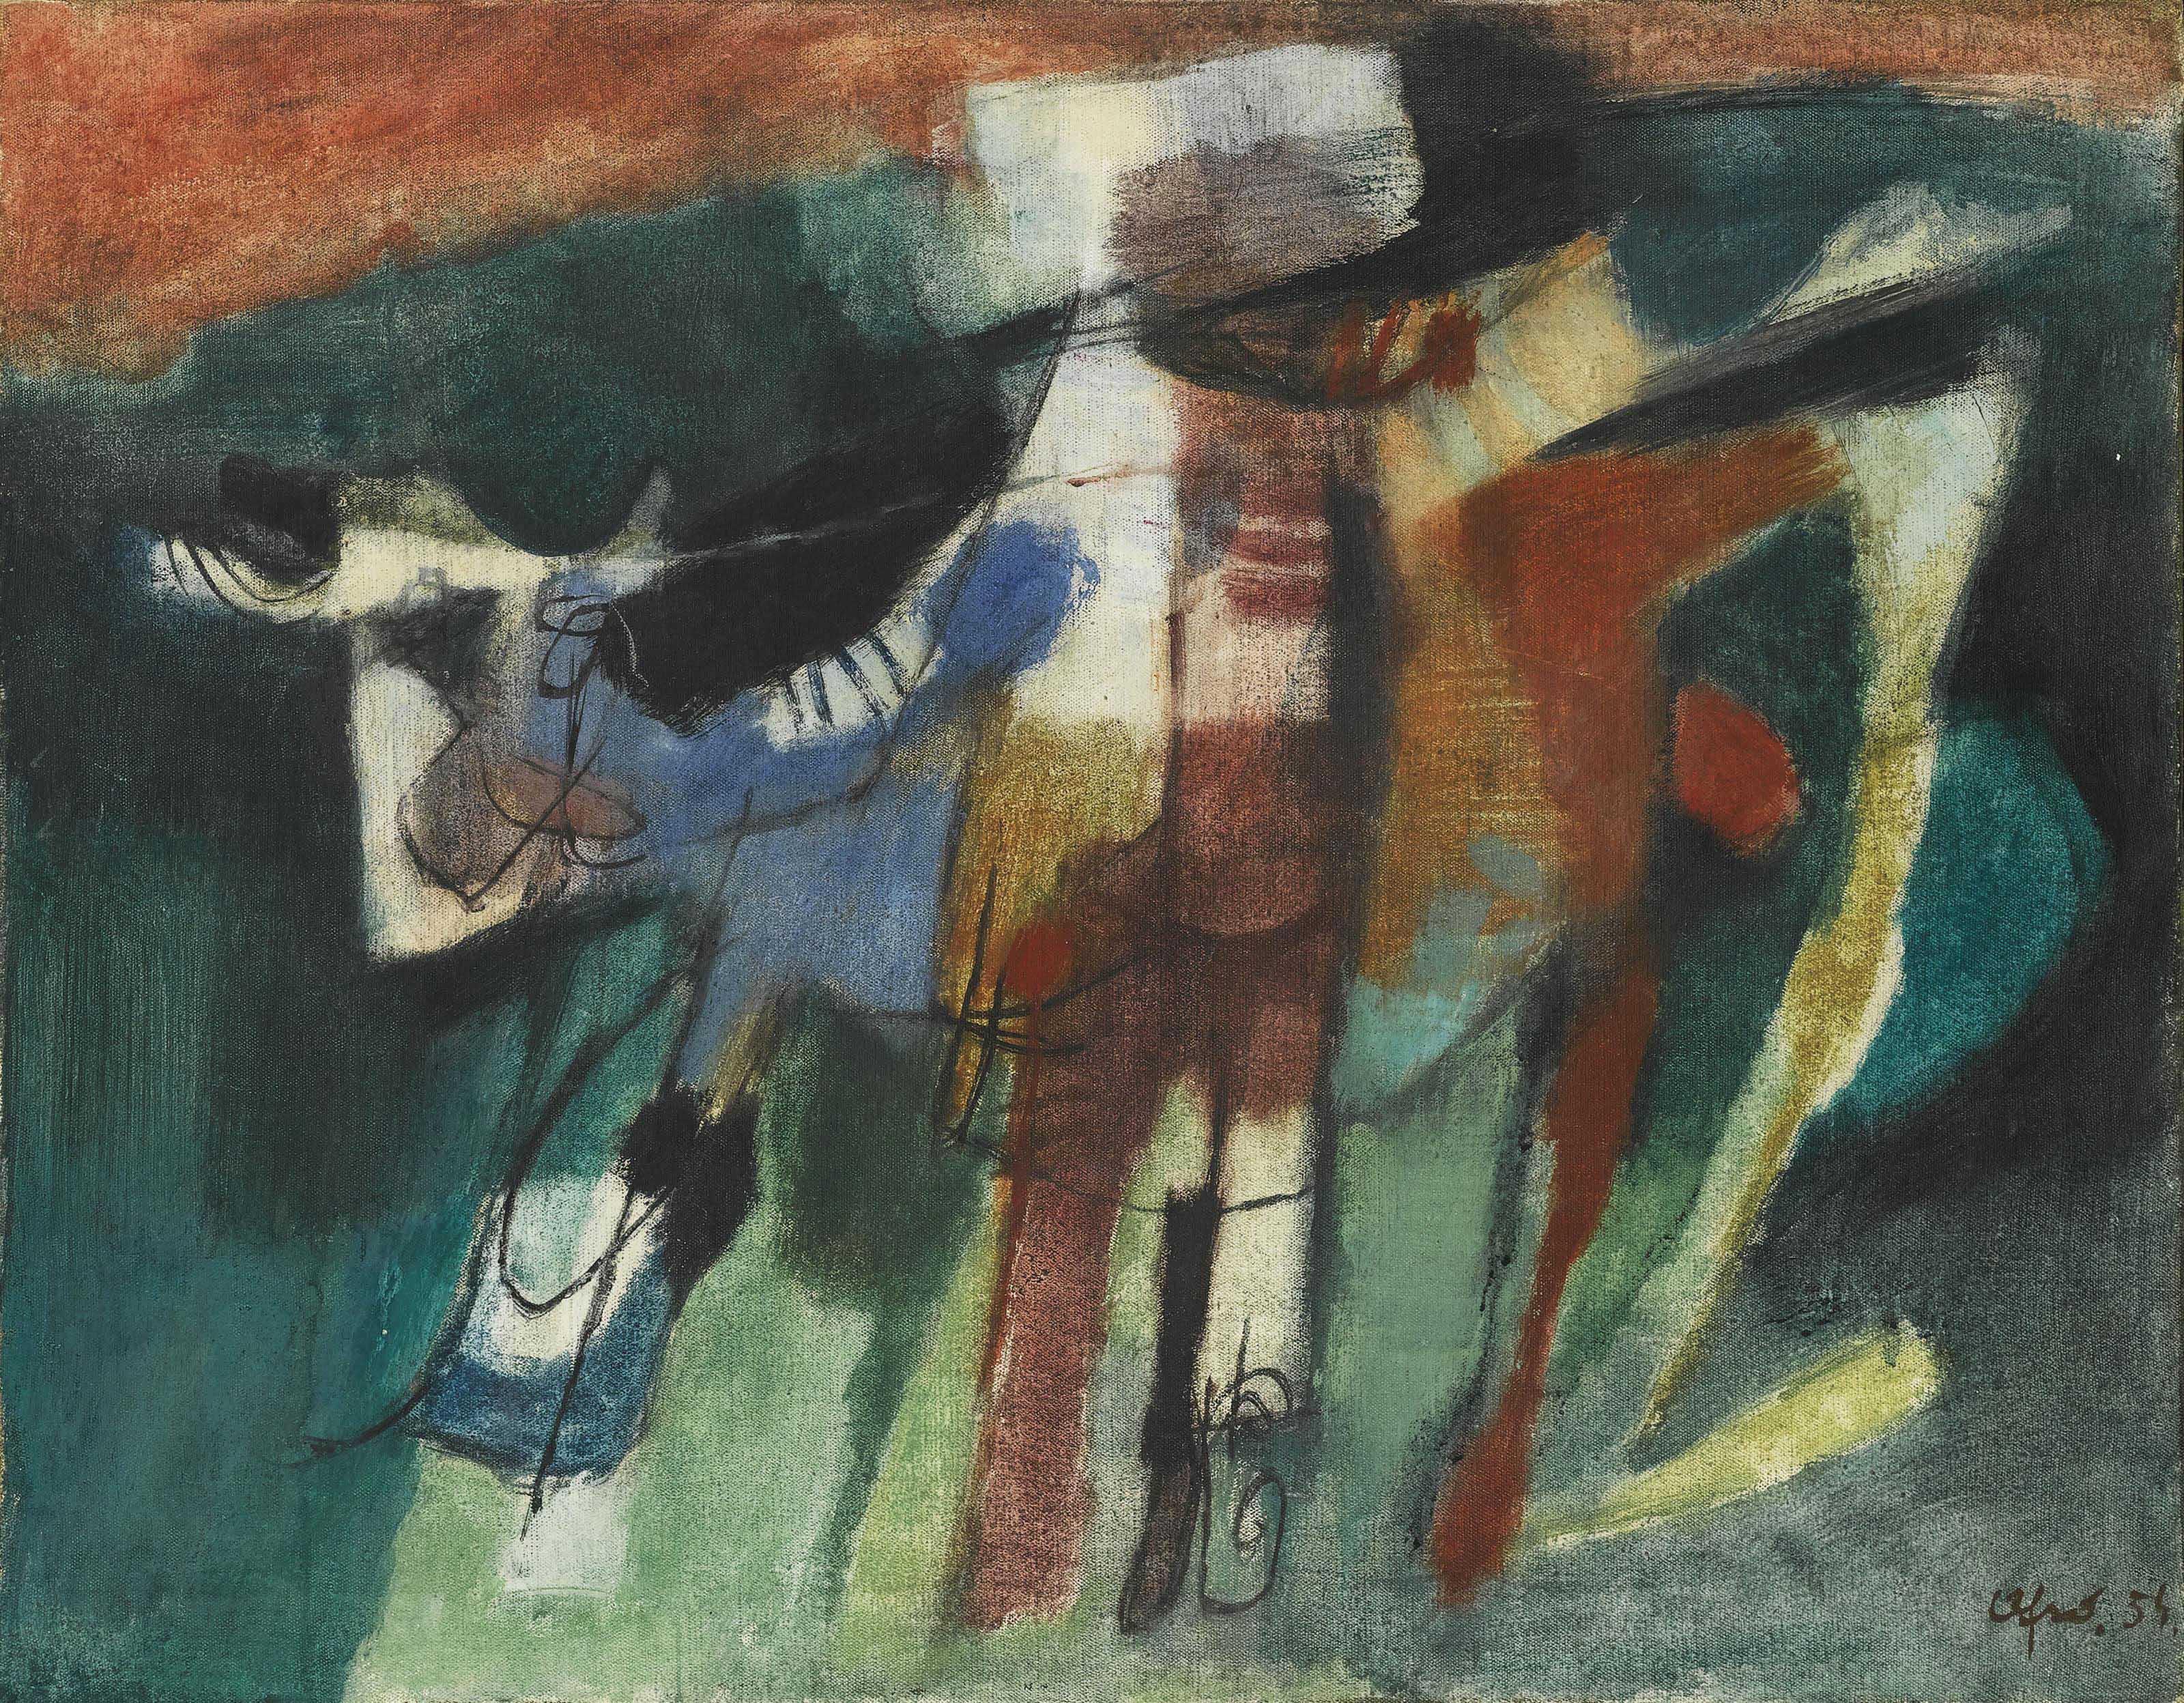 Afro (1912-1976)